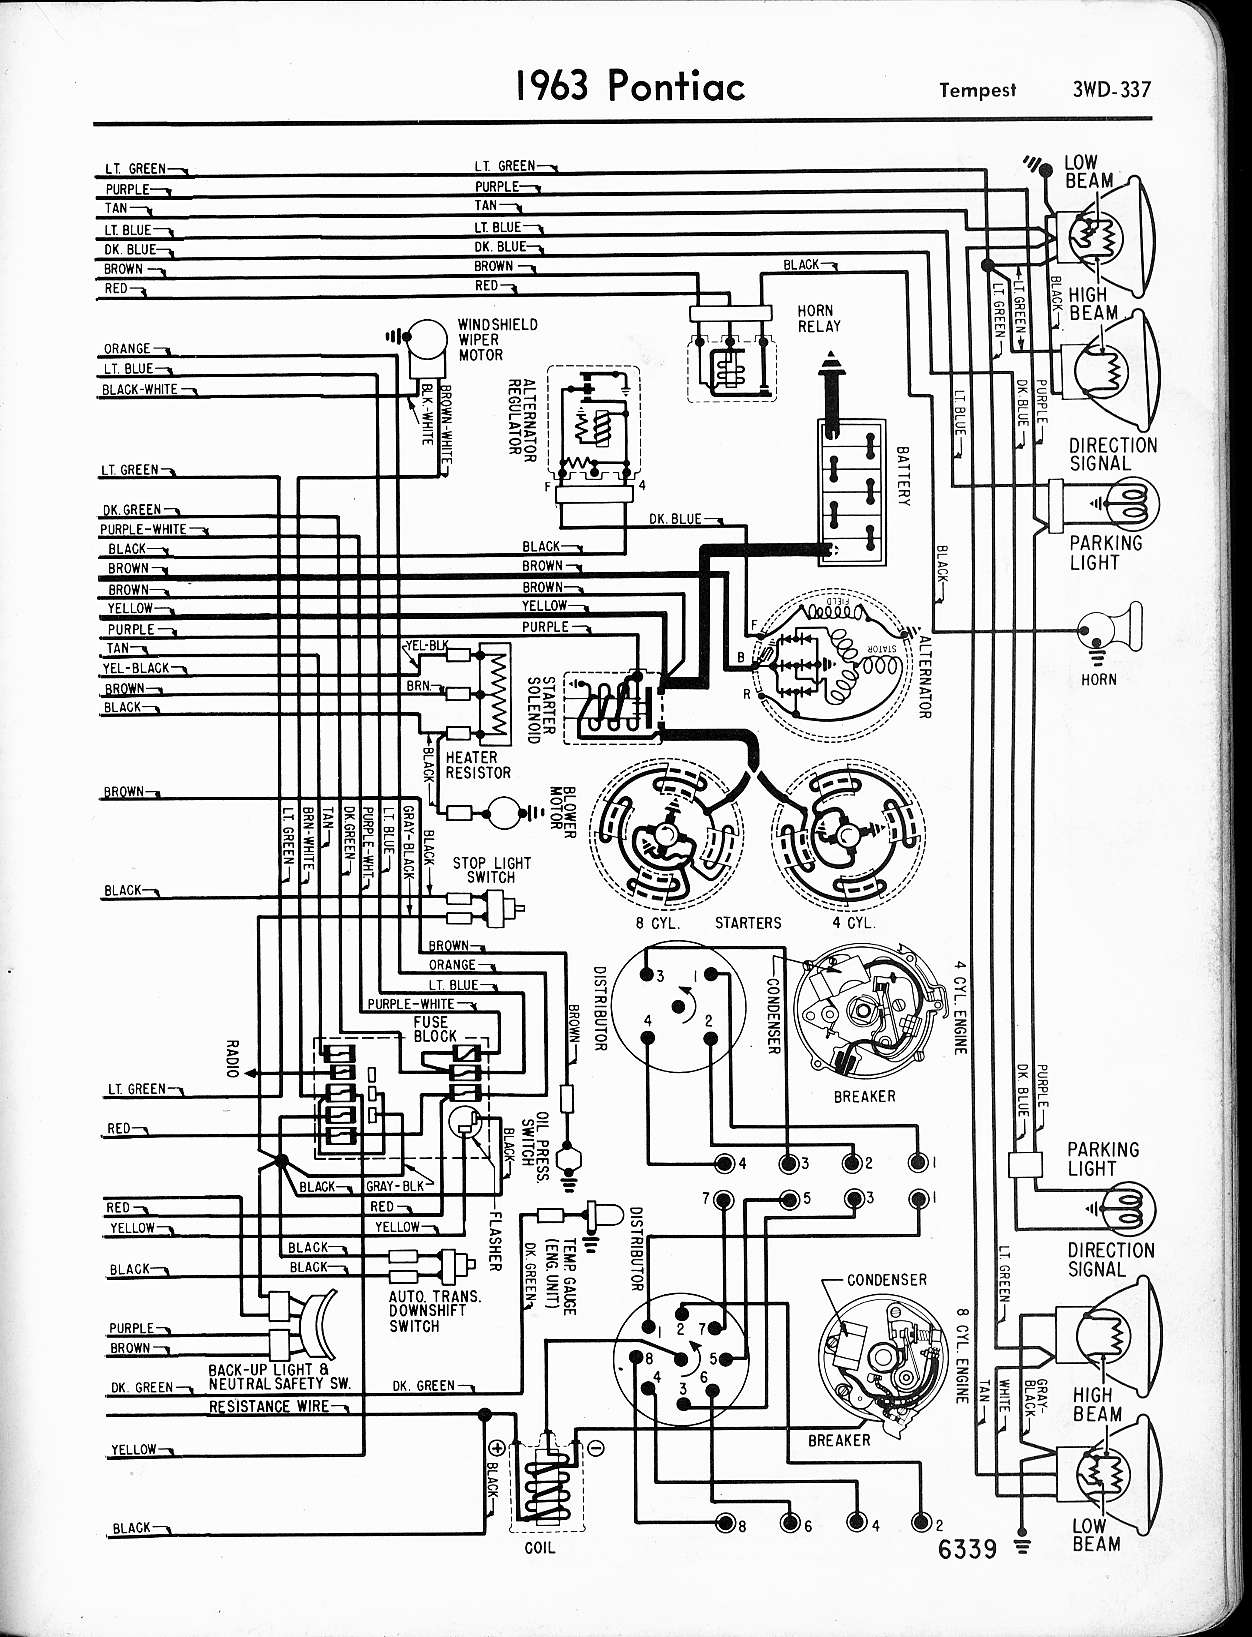 Wallace Racing Wiring Diagrams 1973 Mustang Ignition Switch Diagram 1963 Tempest Right Page